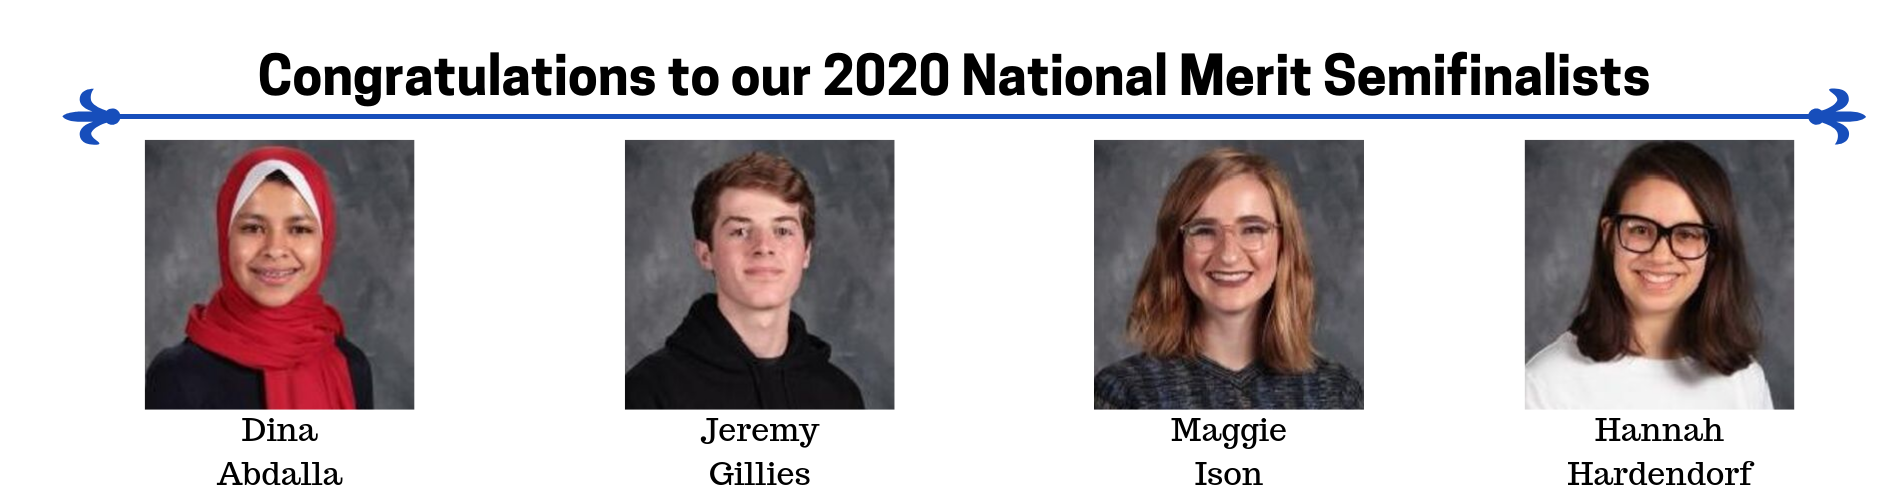 Congratulations to our 2020 National Merit Semifinalists. Dina Abdalla, Jeremy Gillies, Maggie Ison, Hannah Hardendorf.